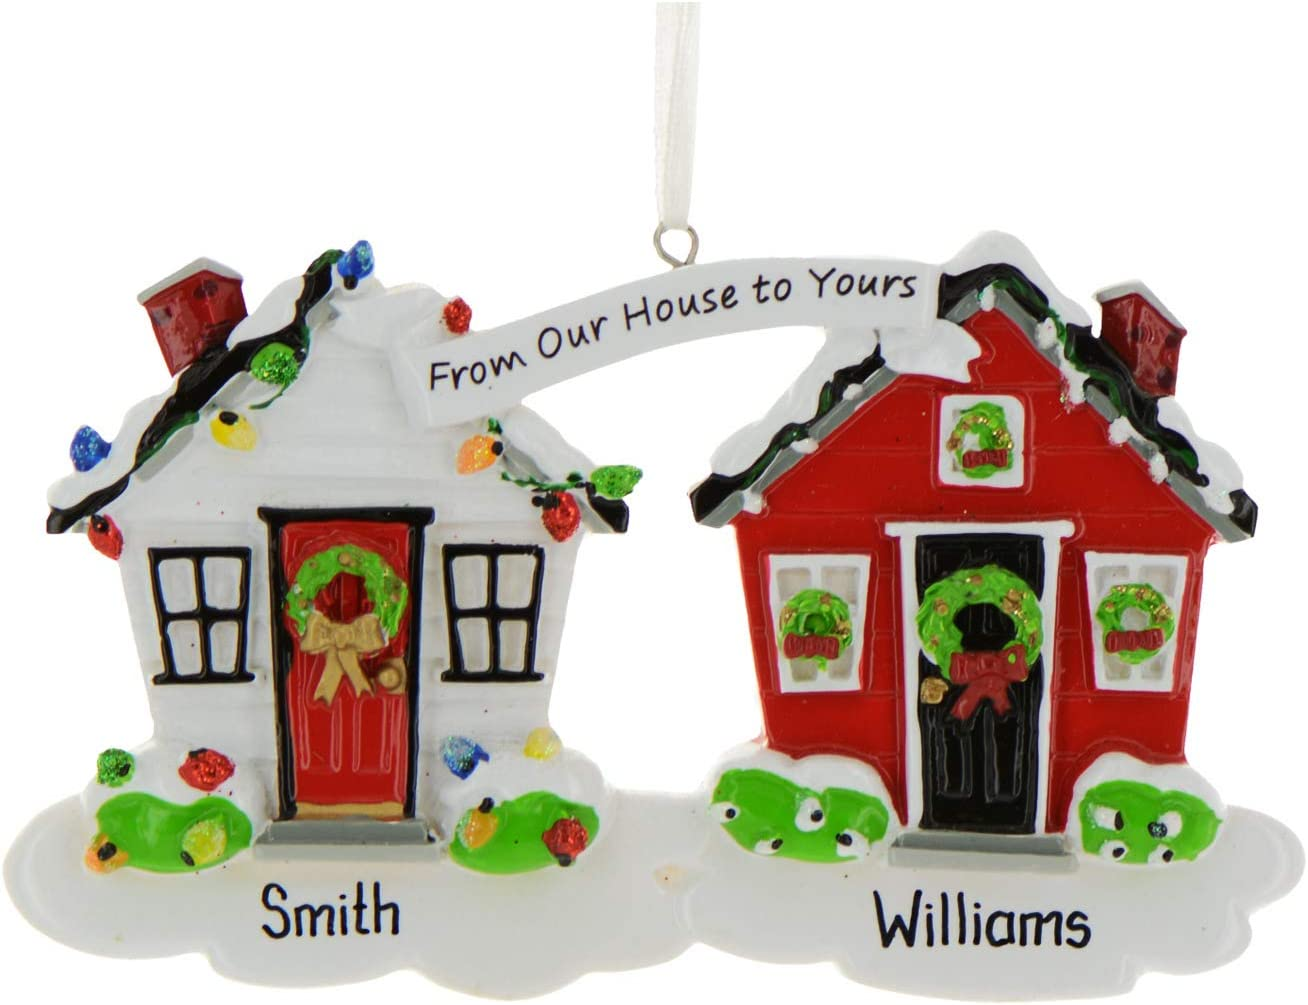 Red White House Christmas Trees 2020 Amazon.com: Personalized from Our House to Yours Christmas Tree